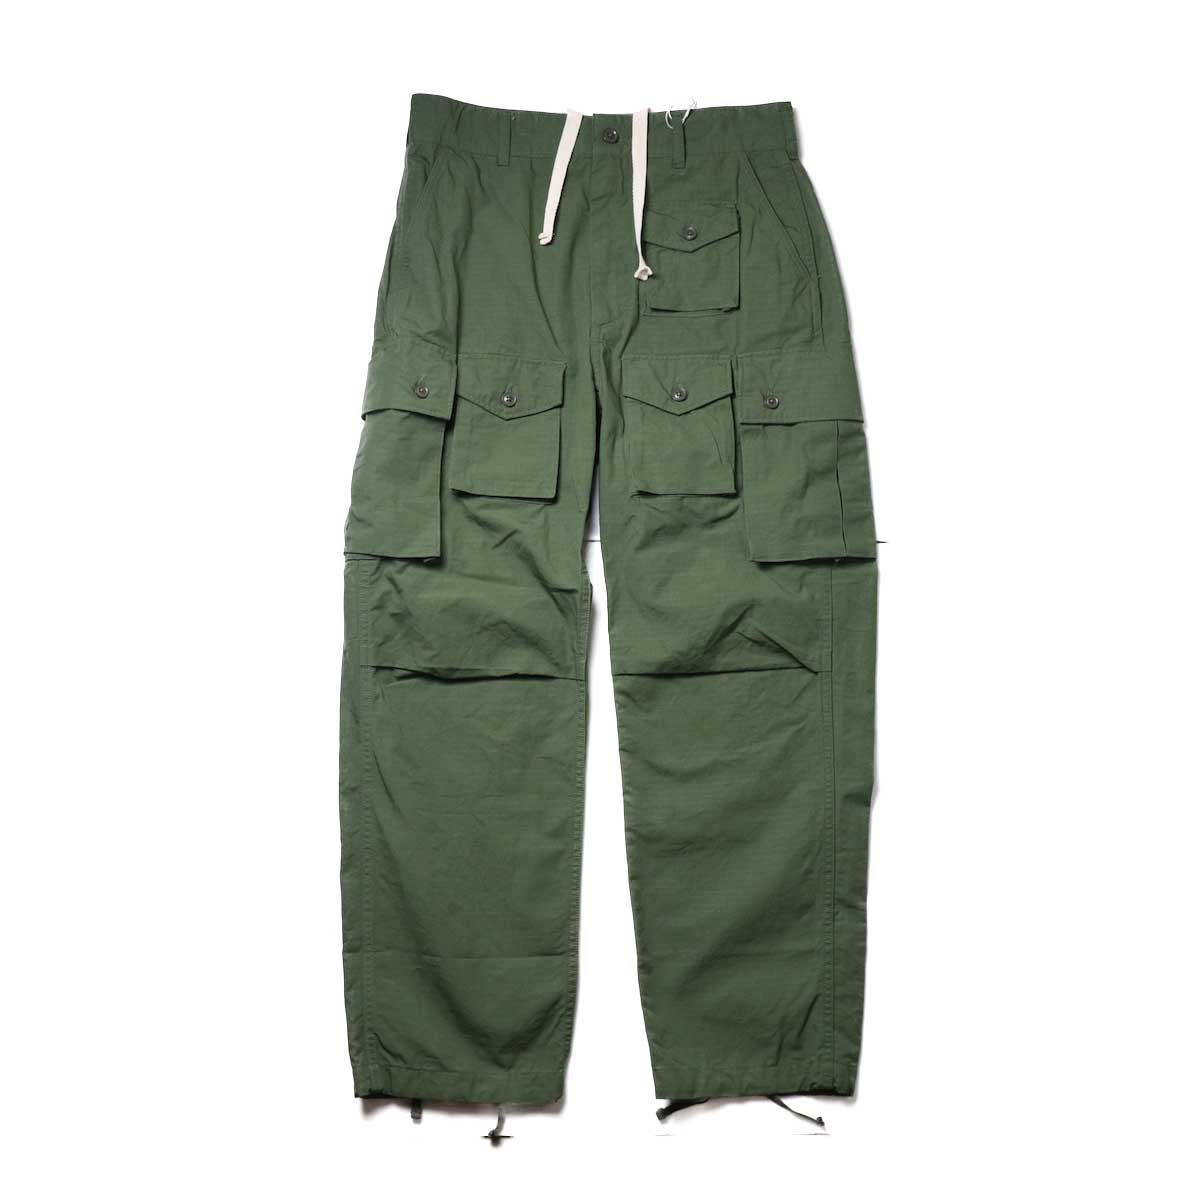 ENGINEERED GARMENTS / FA Pant - Cotton Ripstop (Olive)